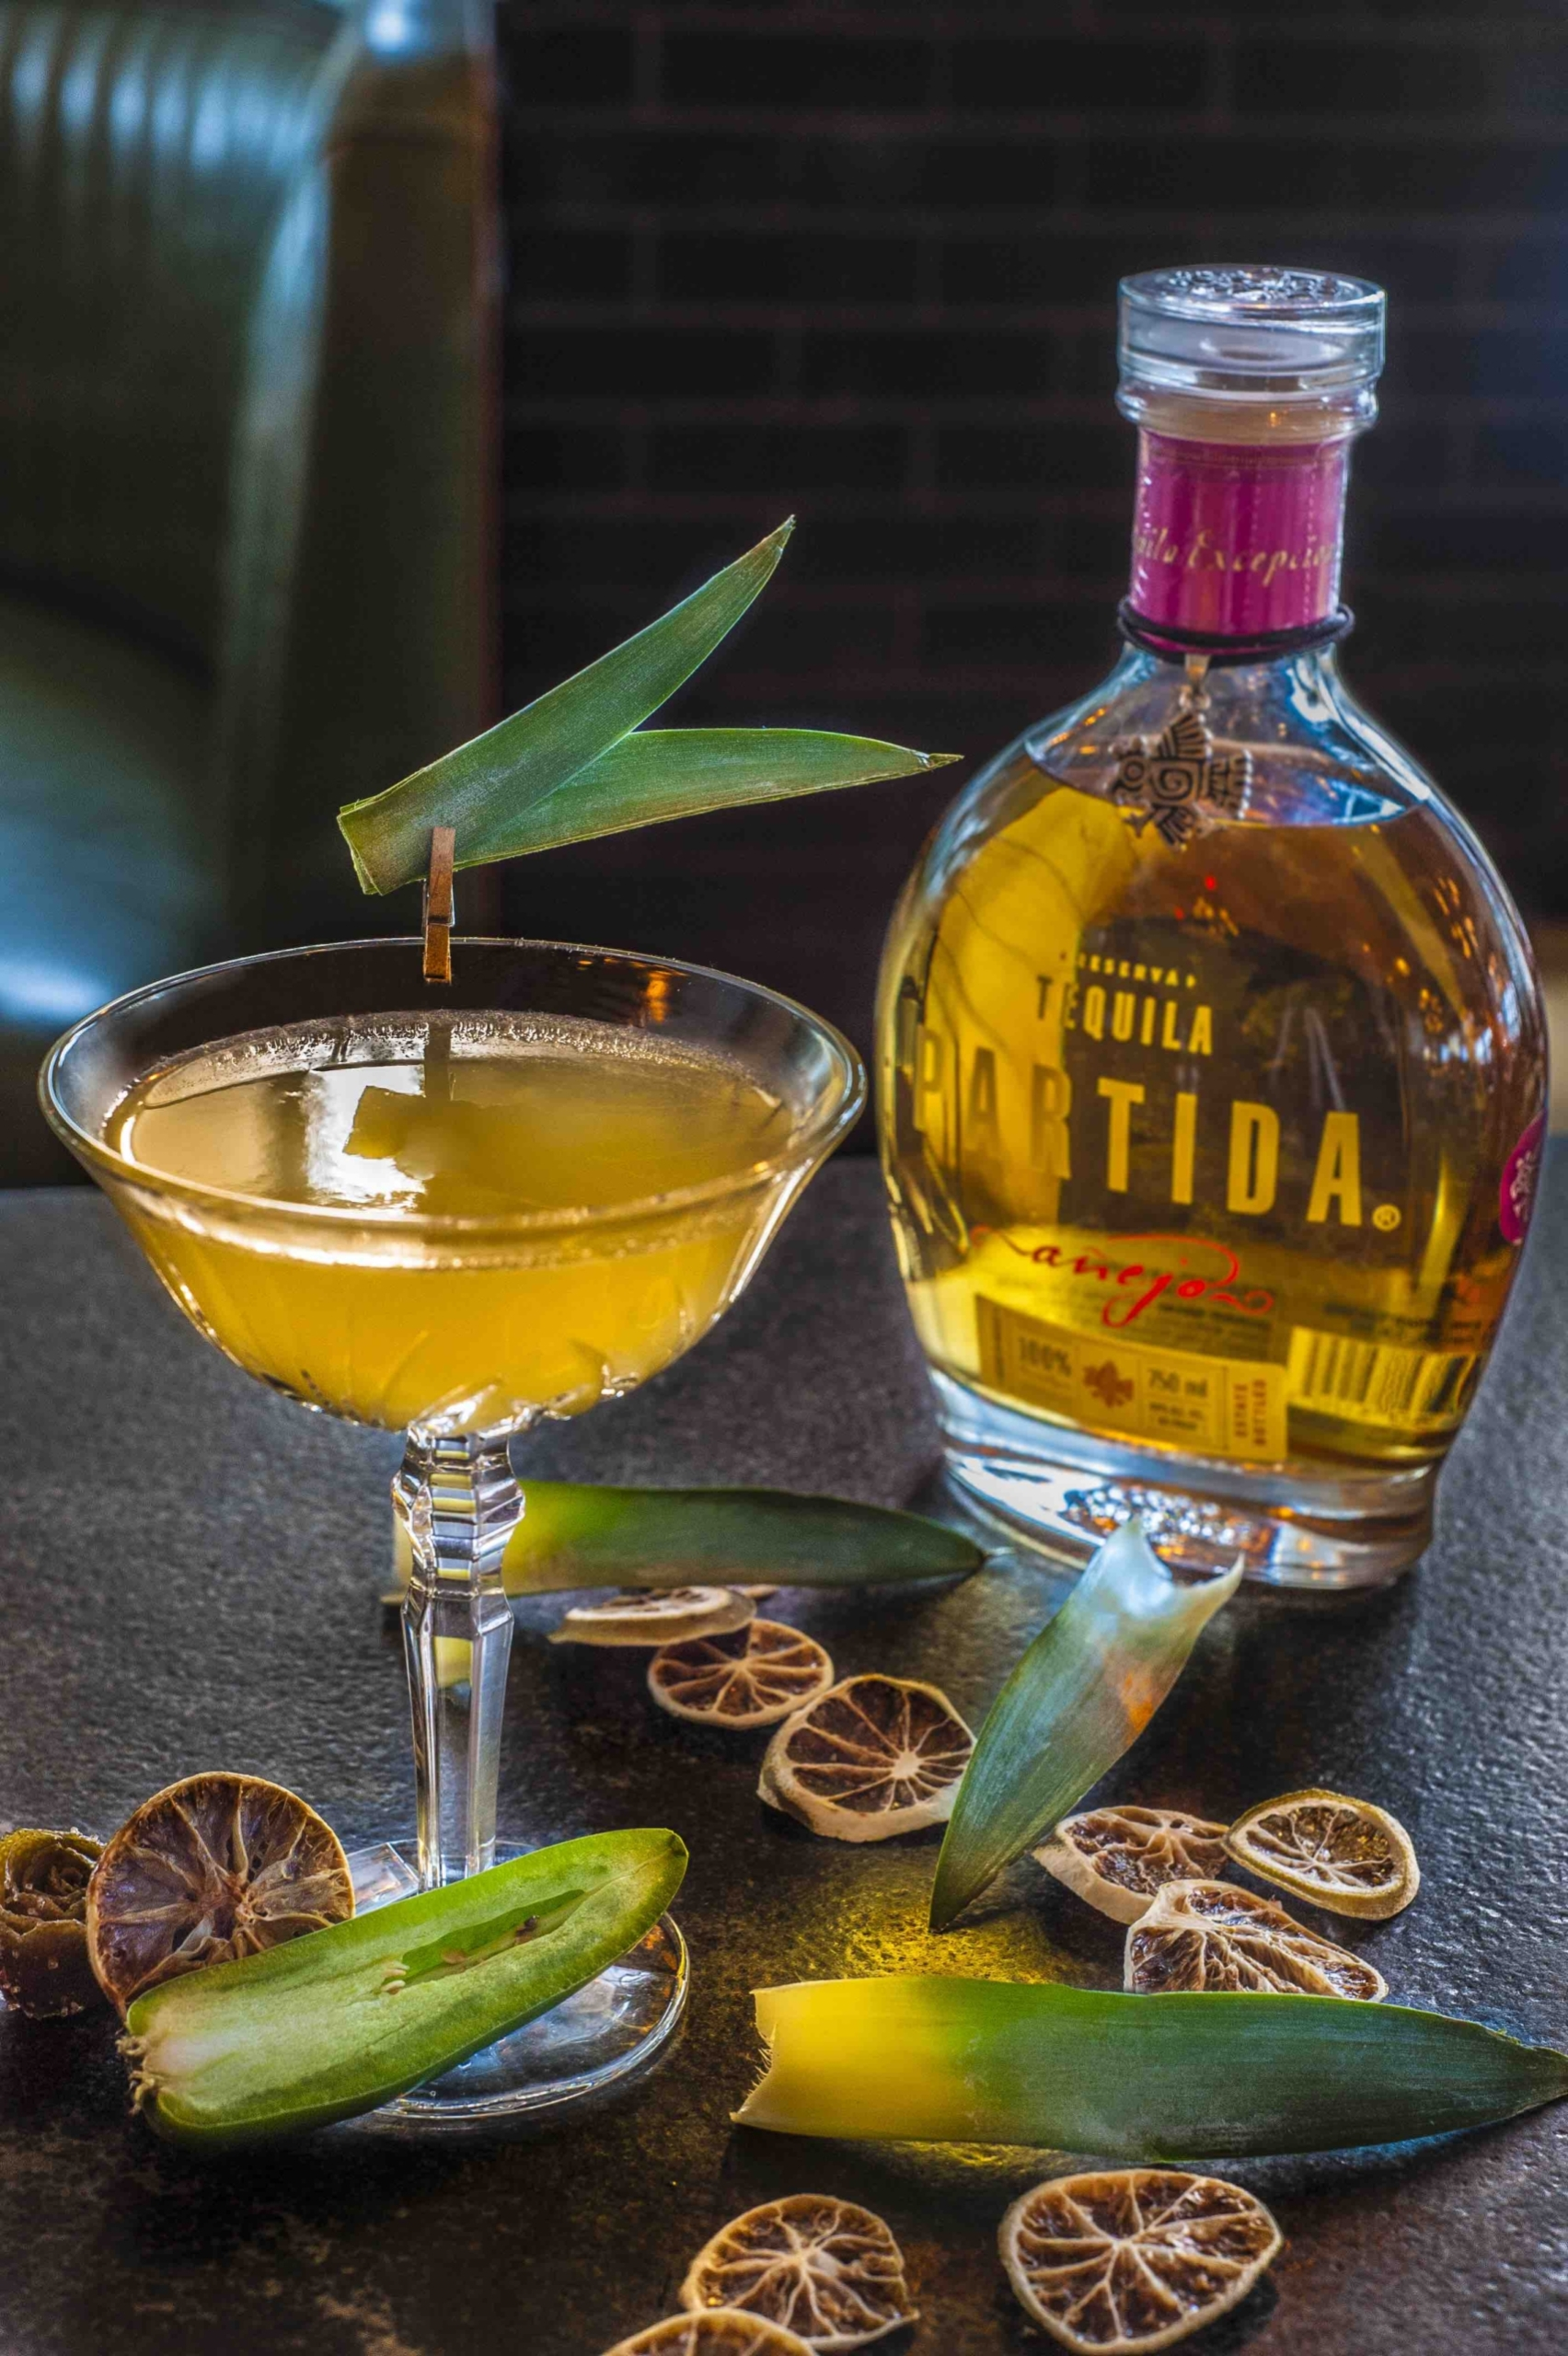 El Cohete Is These Are The Perfect Tequila Cocktail For Summer Sipping